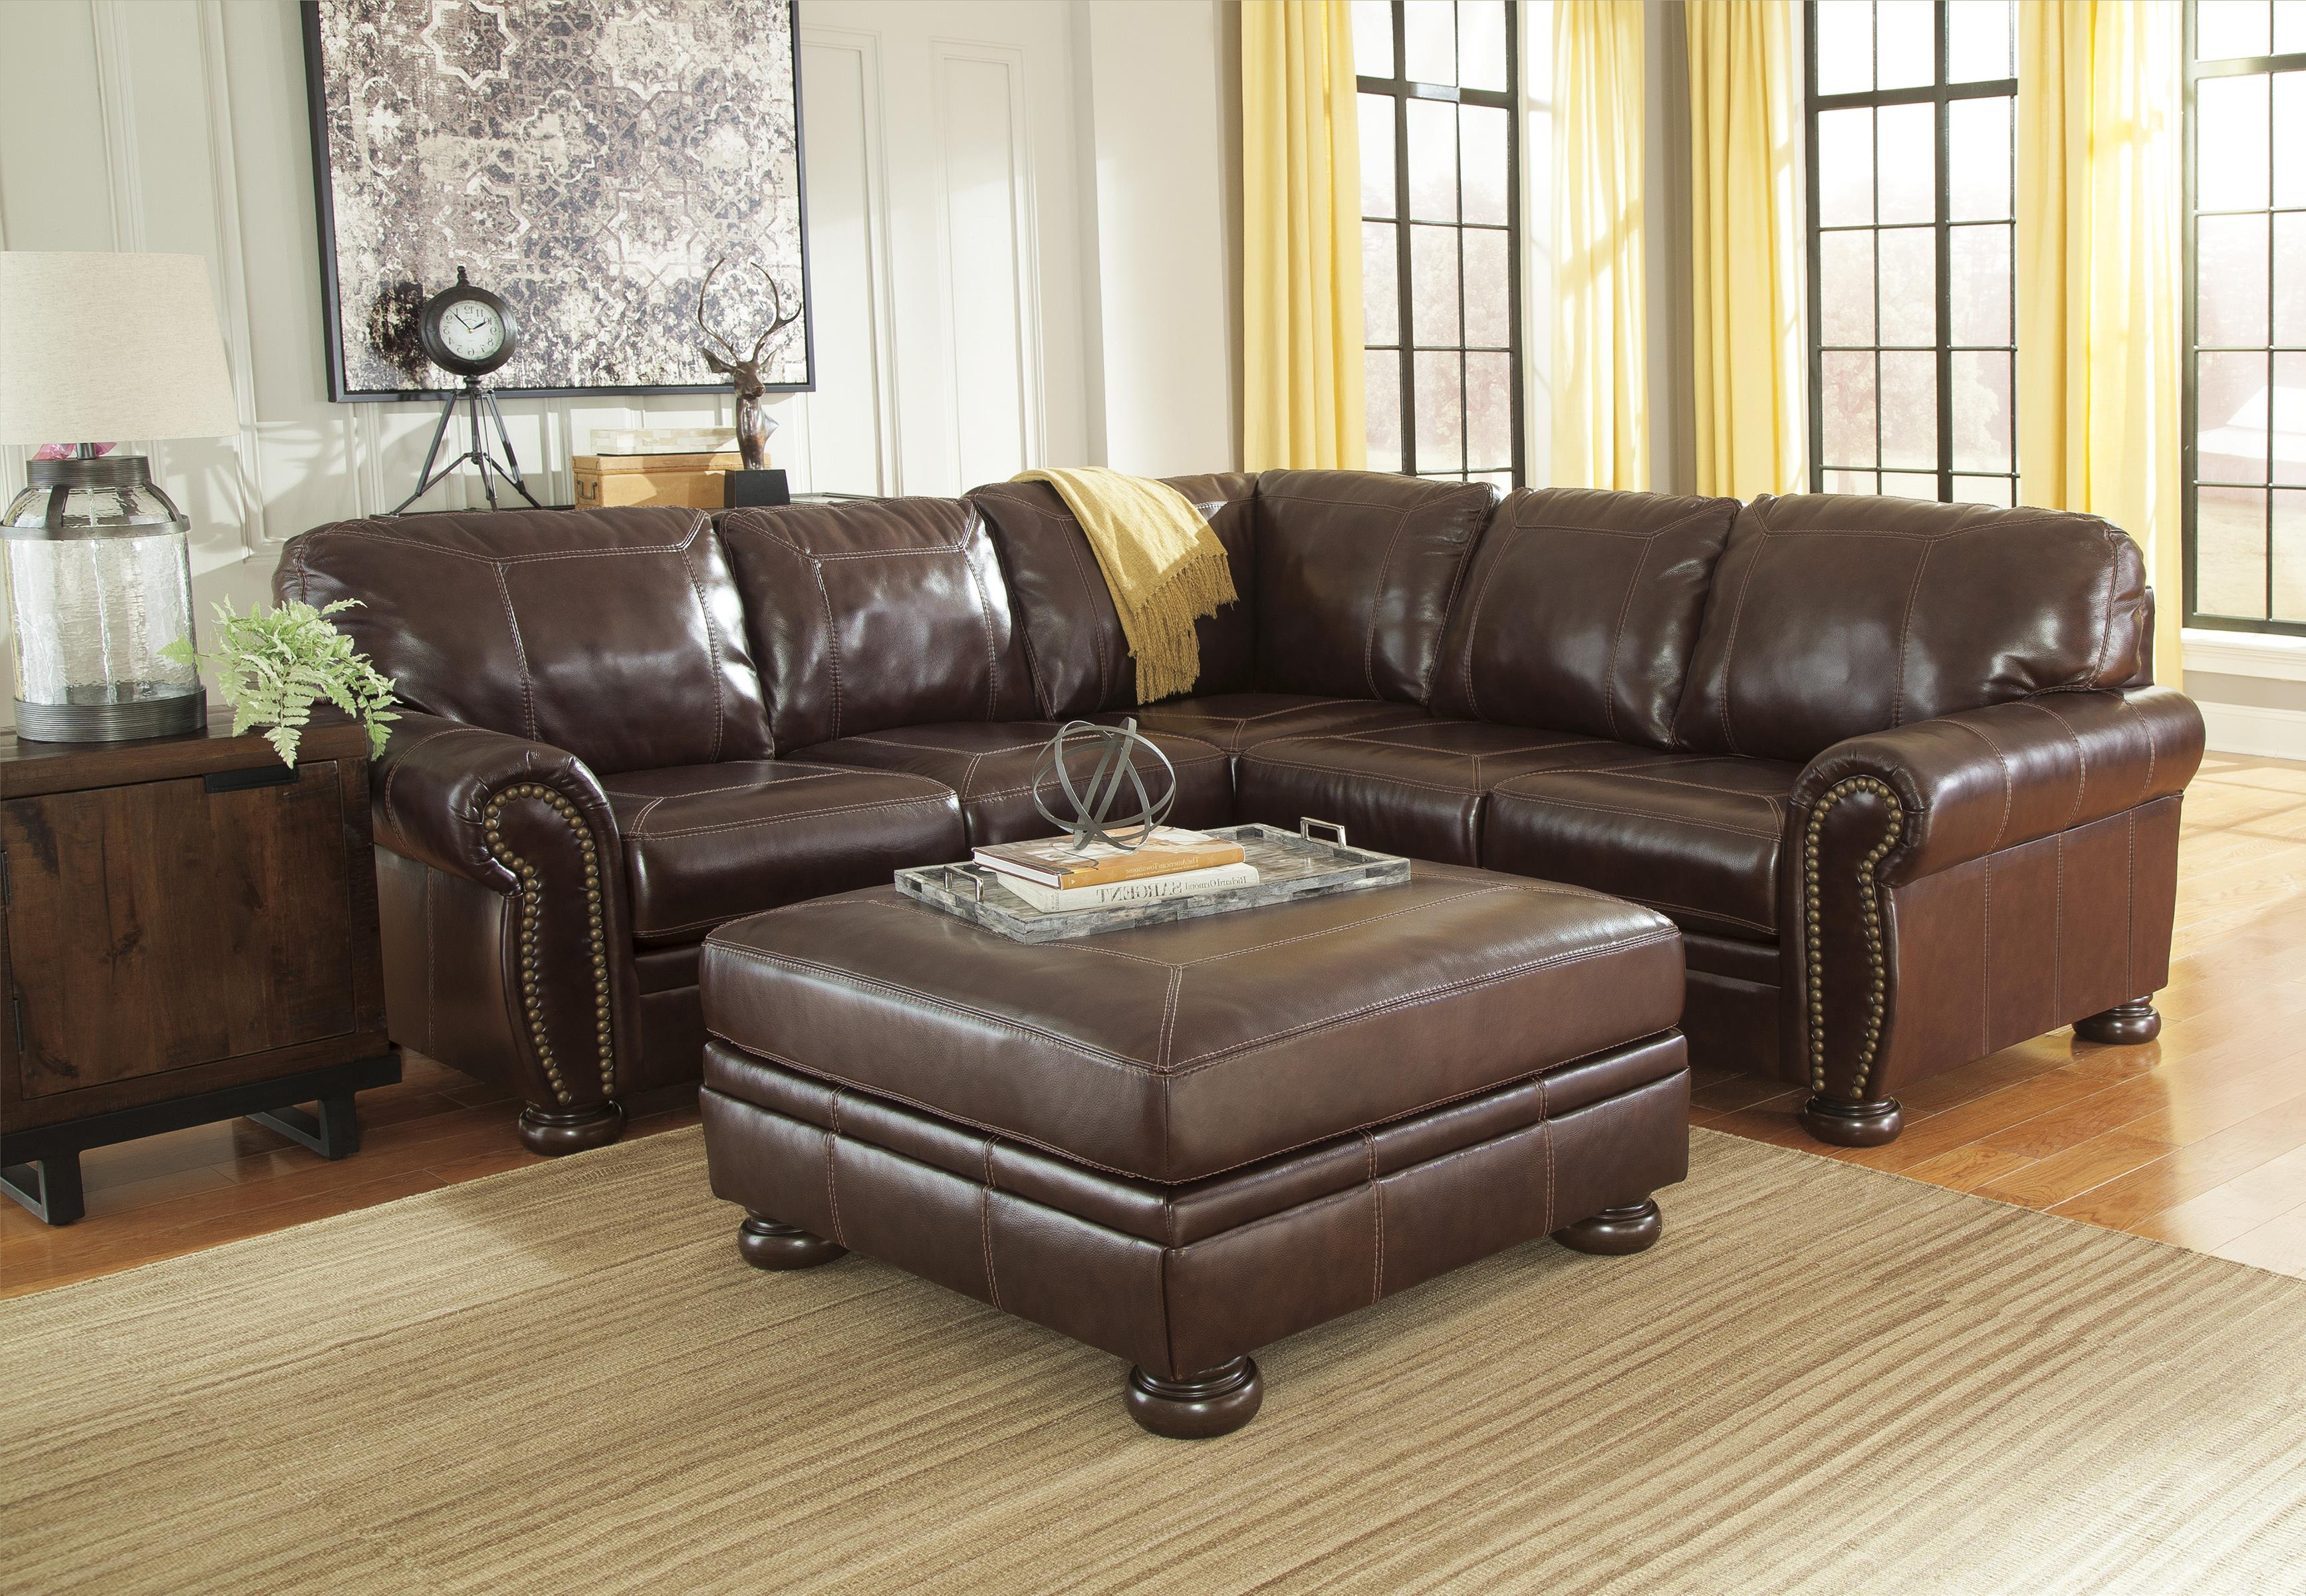 2-Piece Sectional : leather sectional with nailhead trim - Sectionals, Sofas & Couches